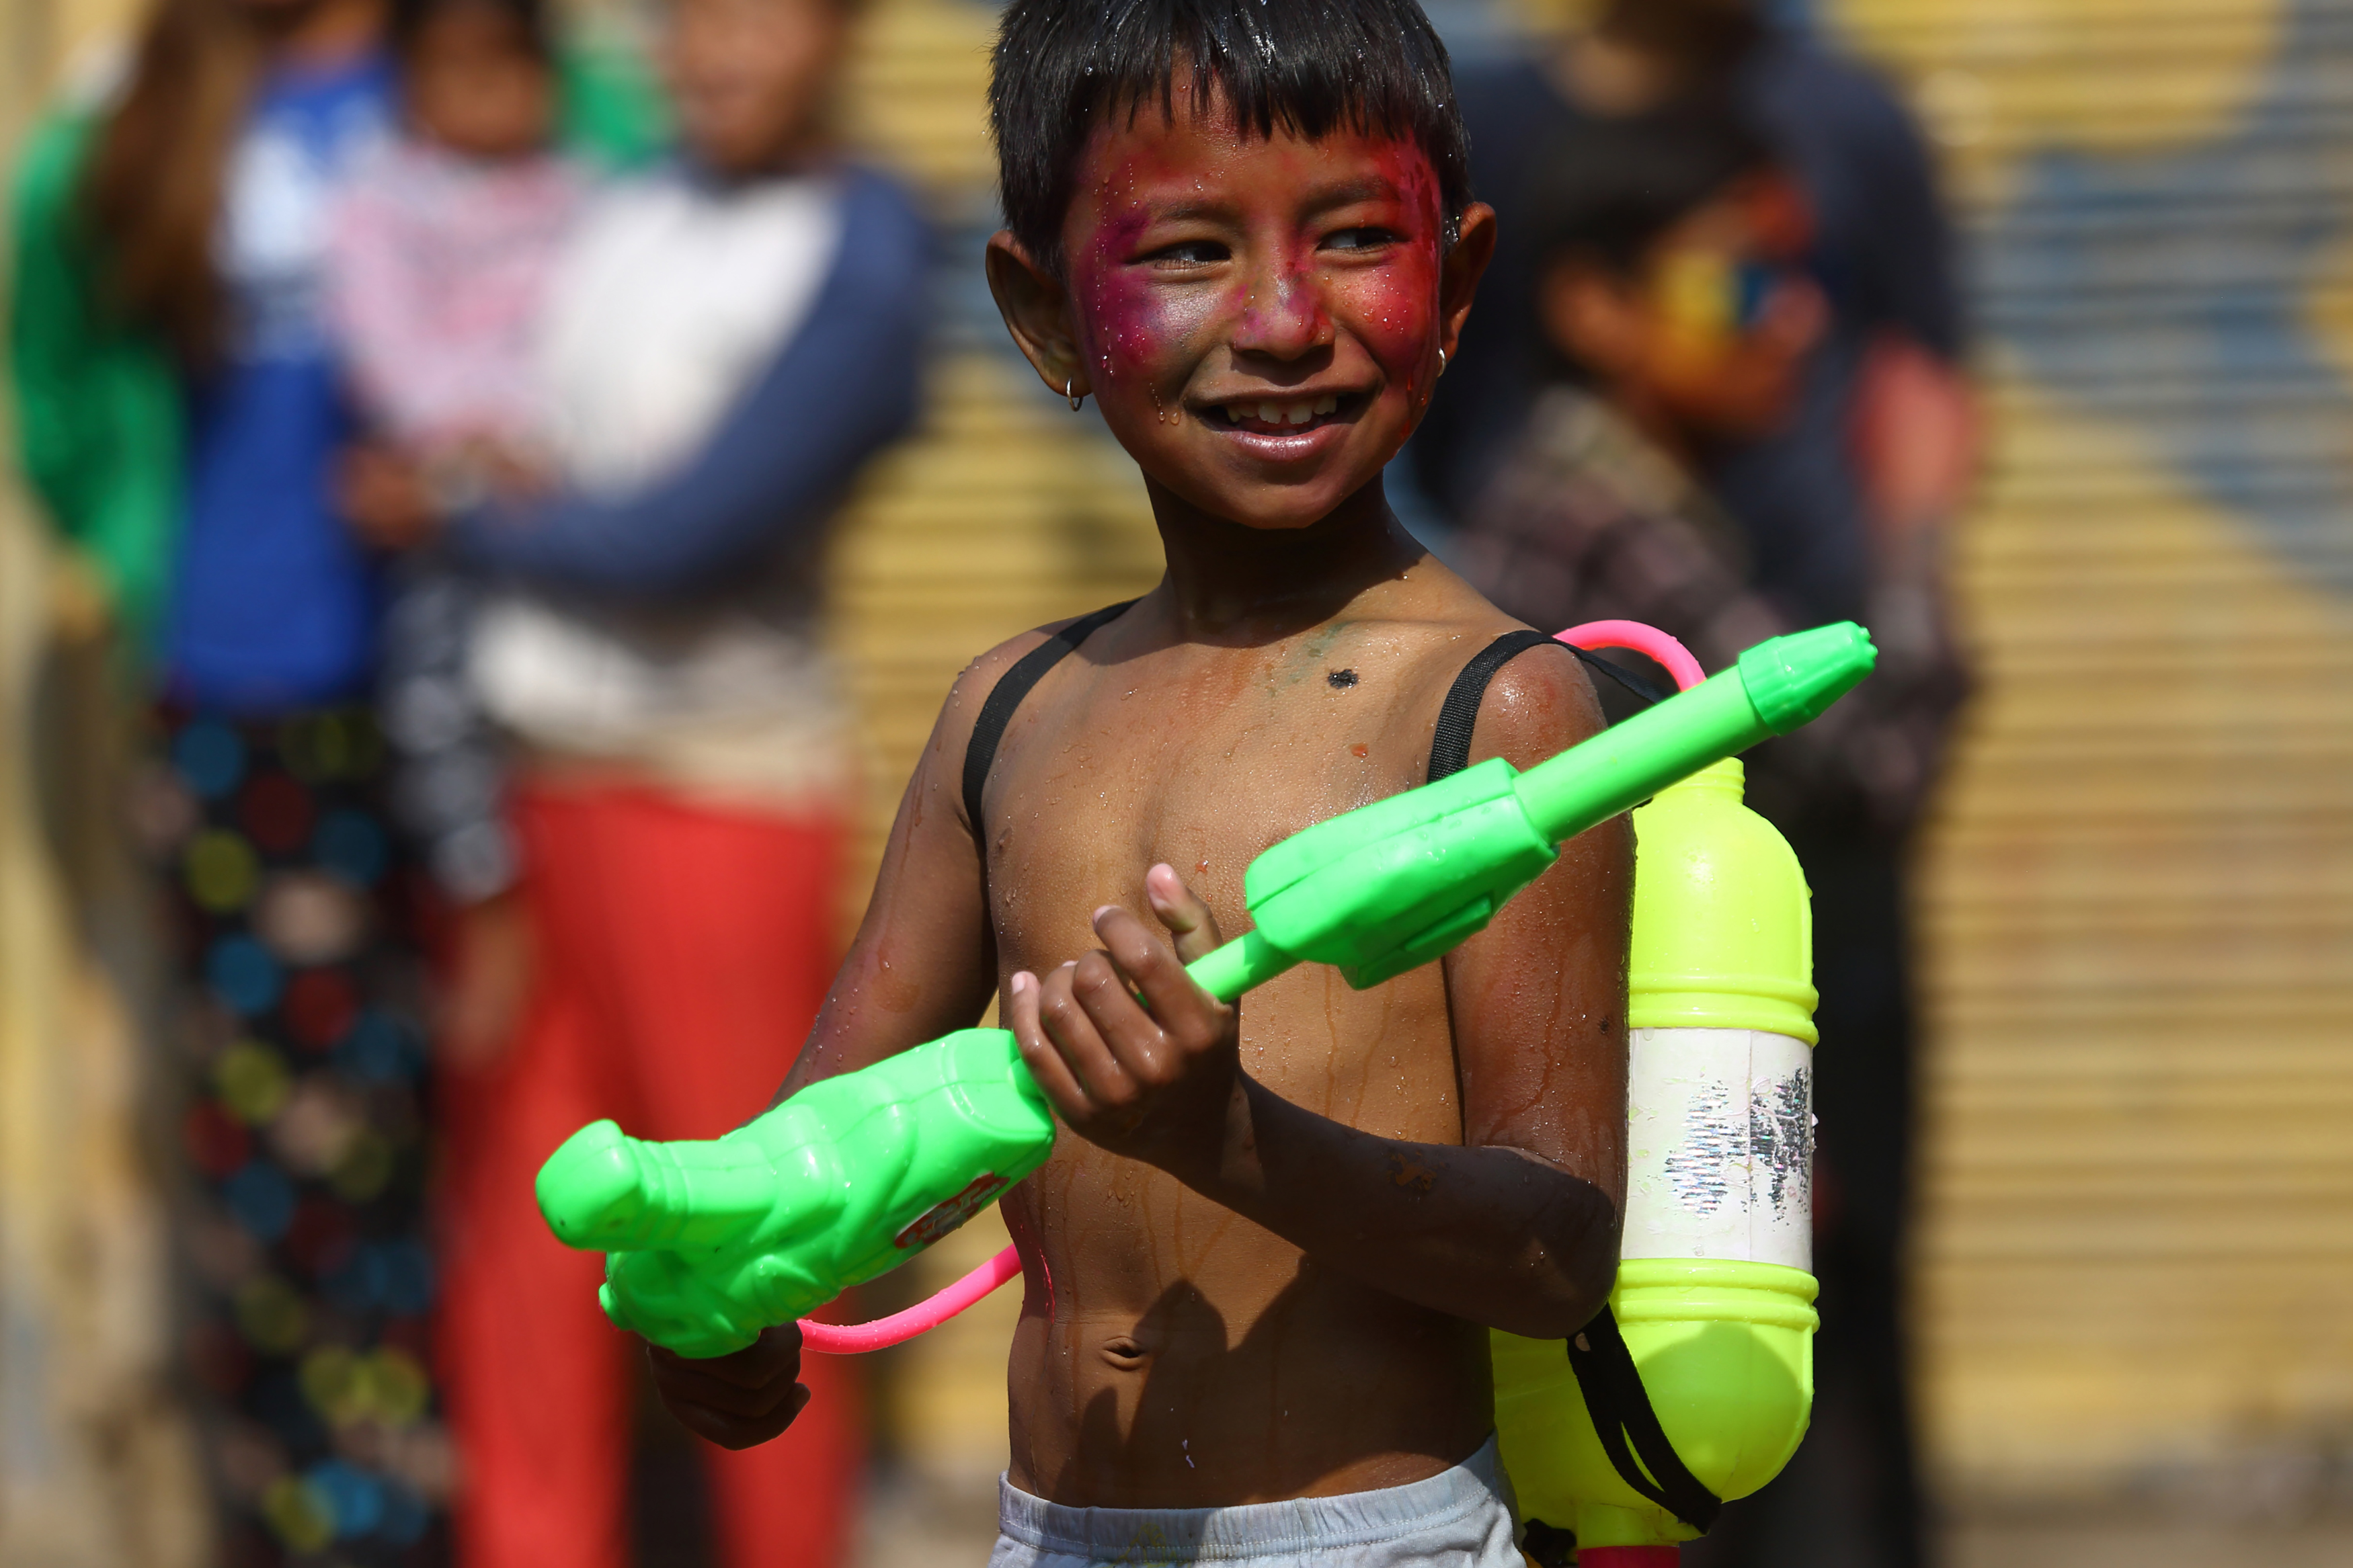 A boy plays with his watergun as he celebrates Holi in Lalitpur, Nepal, on Thursday. (Image credit: Gopen Rai/AFP)